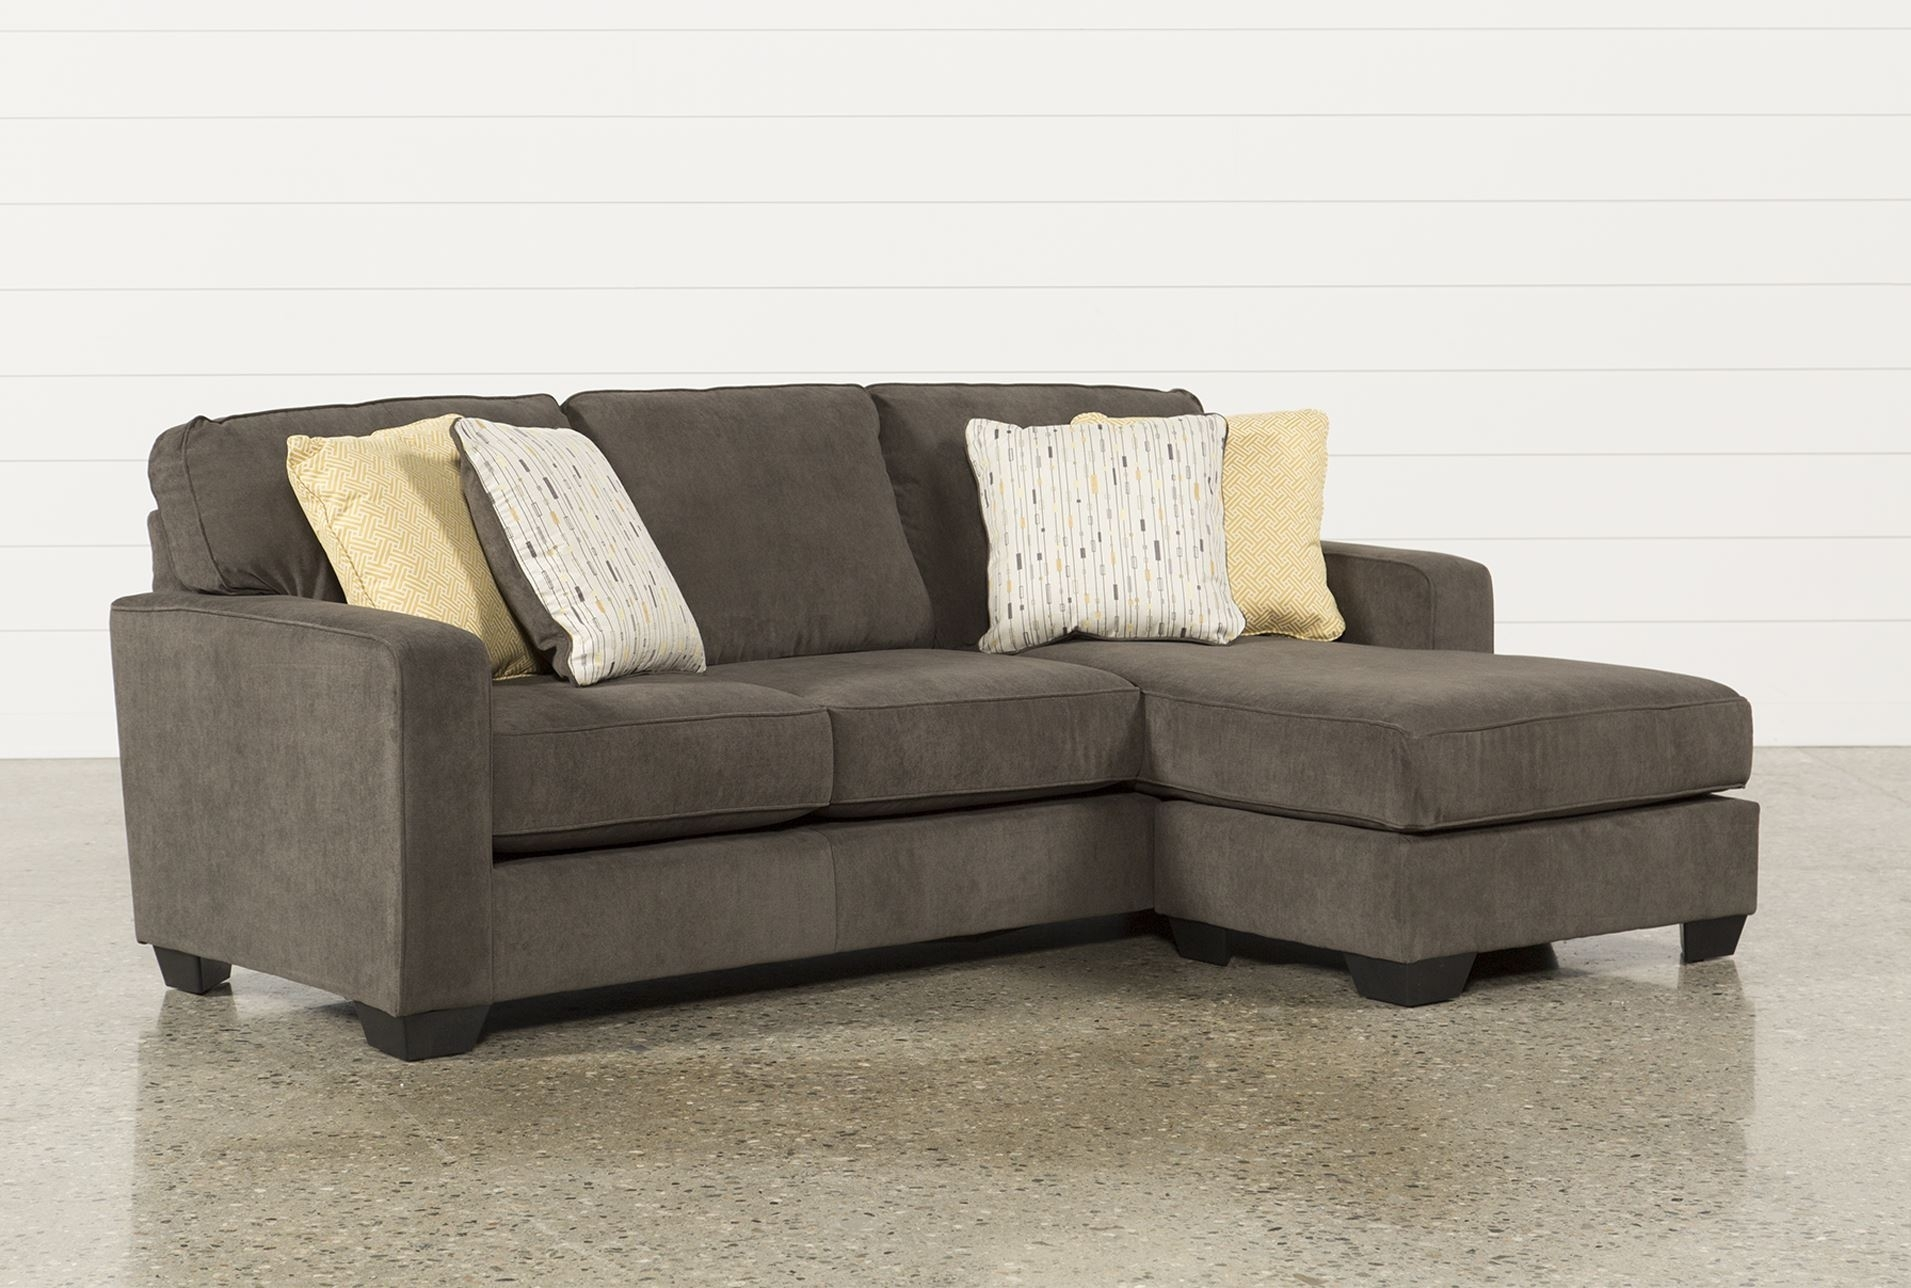 Modern Chesterfield Sofa Distressed Table Ashley Benton Blu Dot Inside Benton 4 Piece Sectionals (Image 14 of 25)